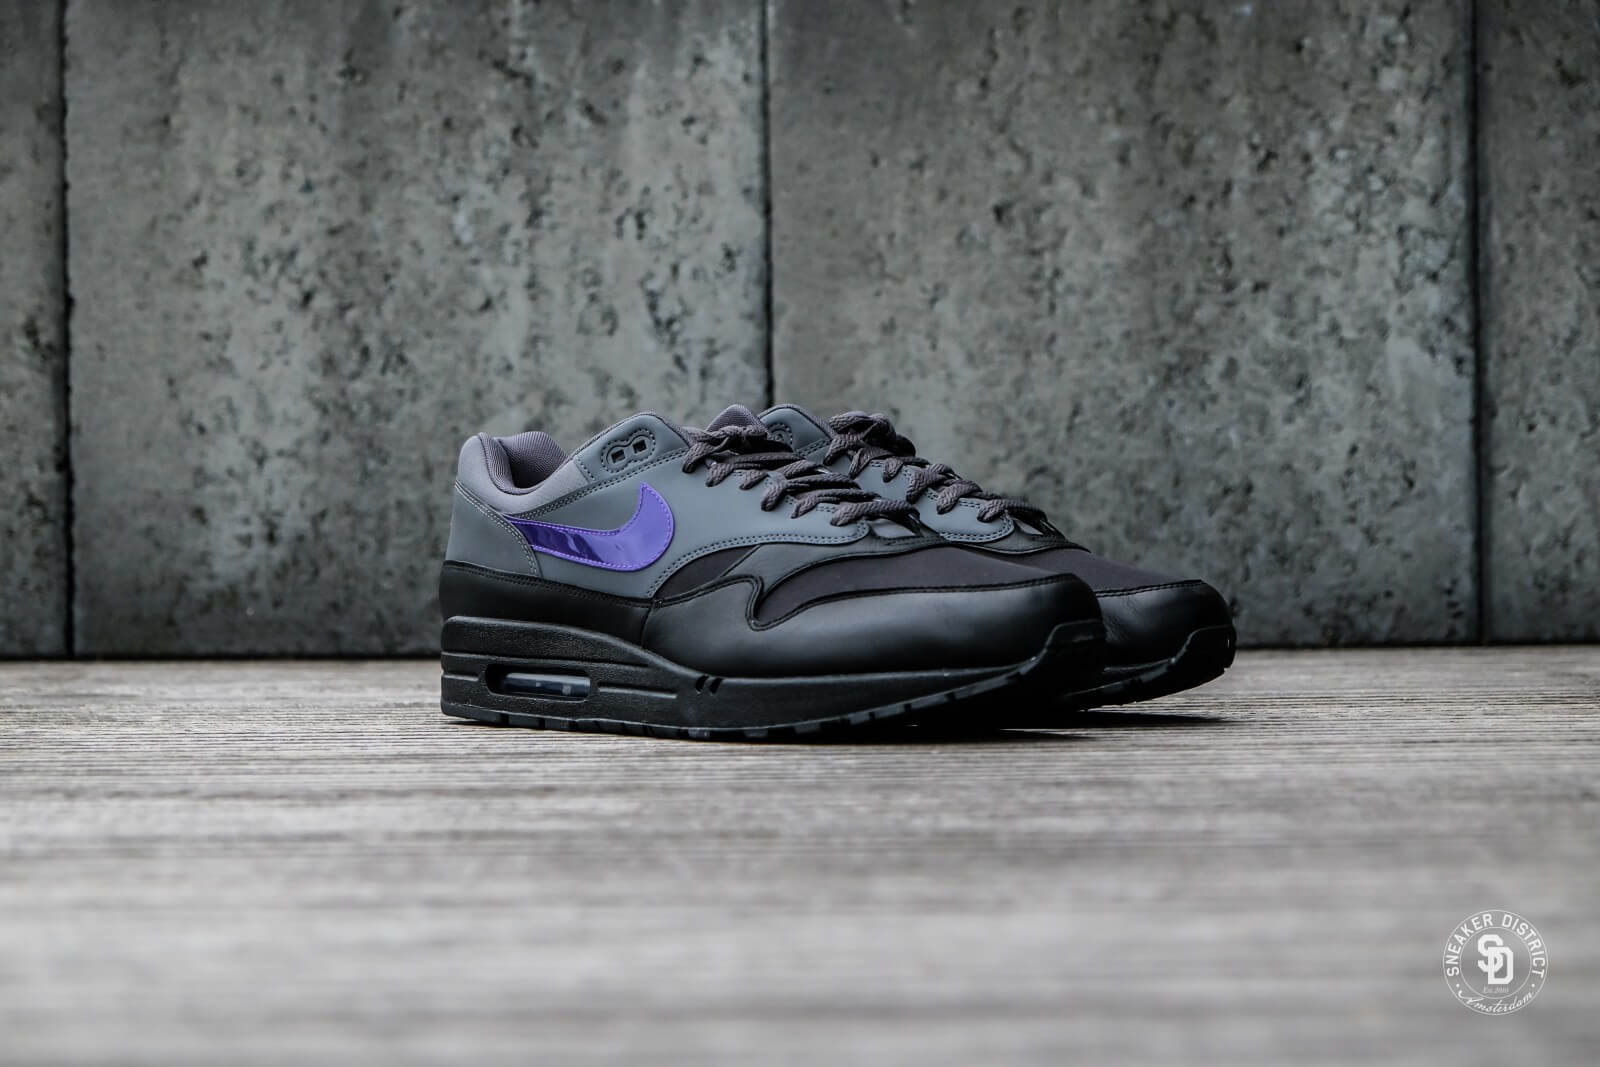 Nike Air Max 1 Club Purple